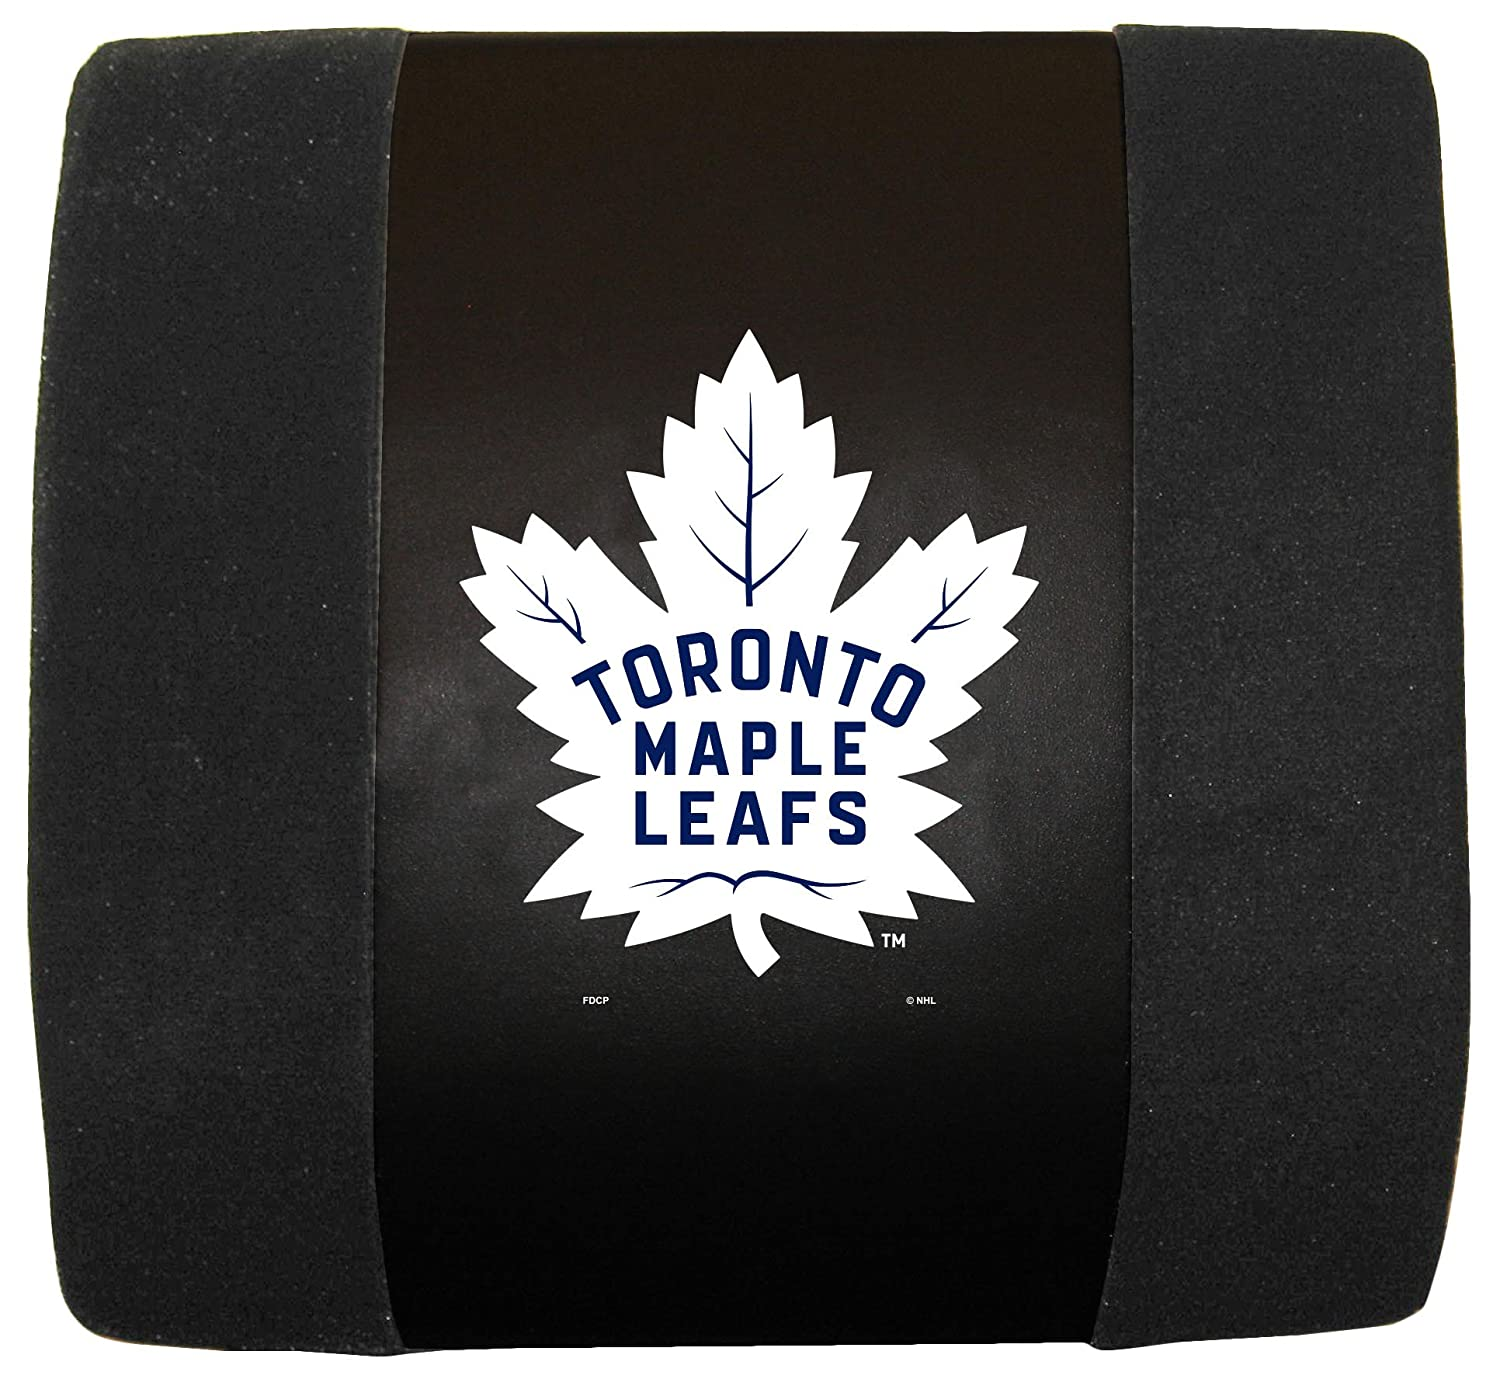 Fremont Die NHL Toronto Maple Leafs Lumbar Support Cushion Black